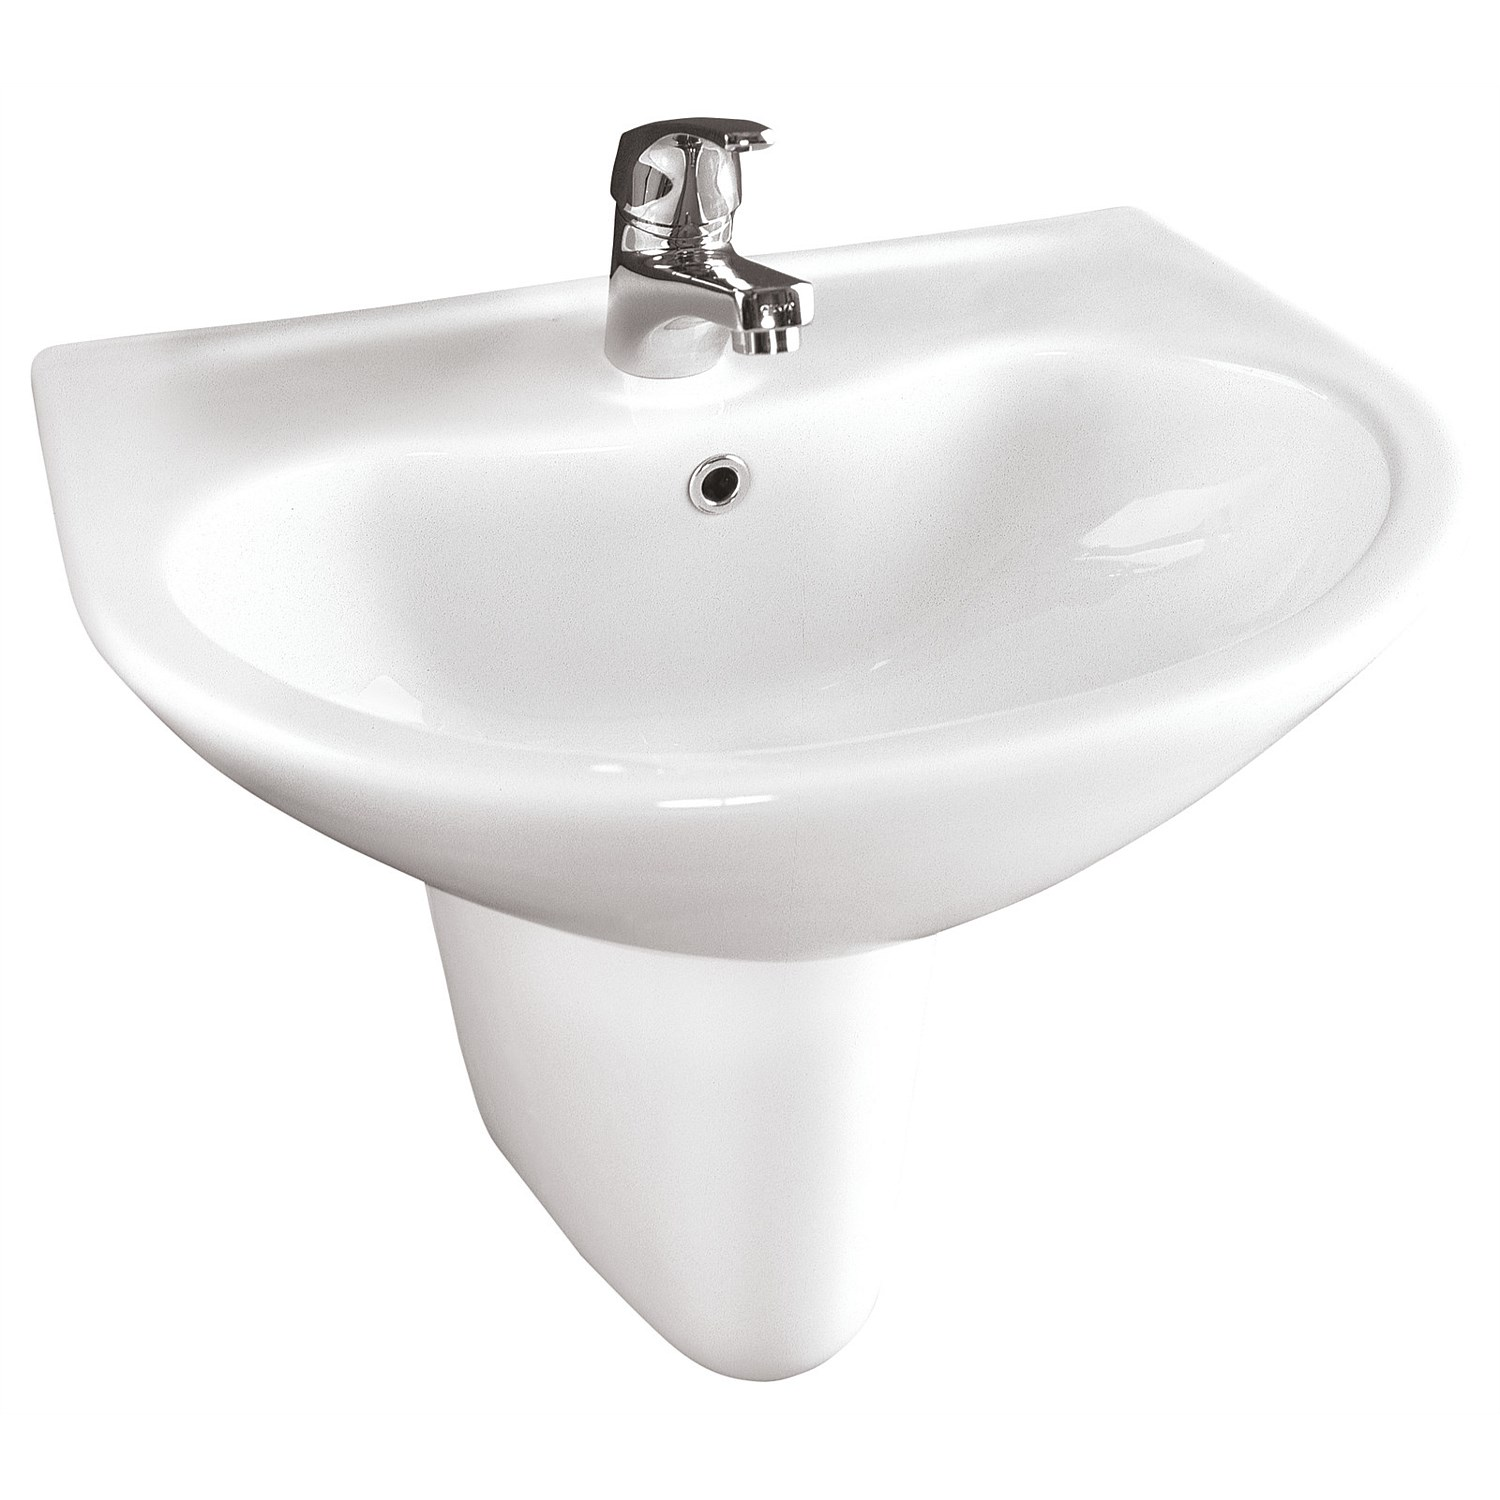 Toto - Toto Sintra 500mm Wall Basin and Semi-Pedestal